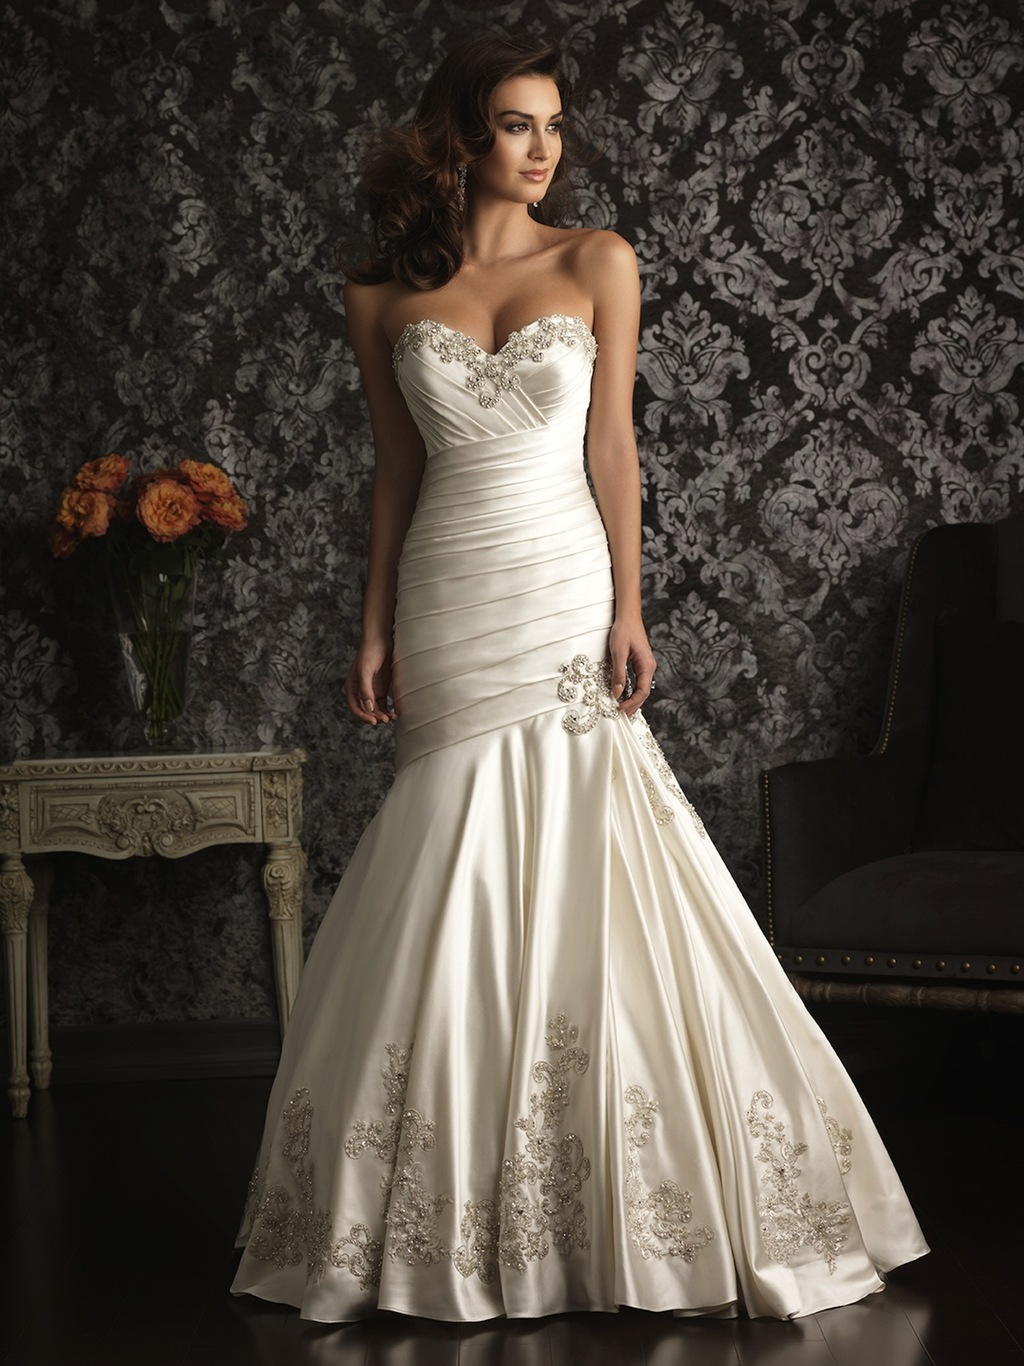 2013-allure-bridals-wedding-dress-bridal-gown-allure-collection-2013-9024f-3.full